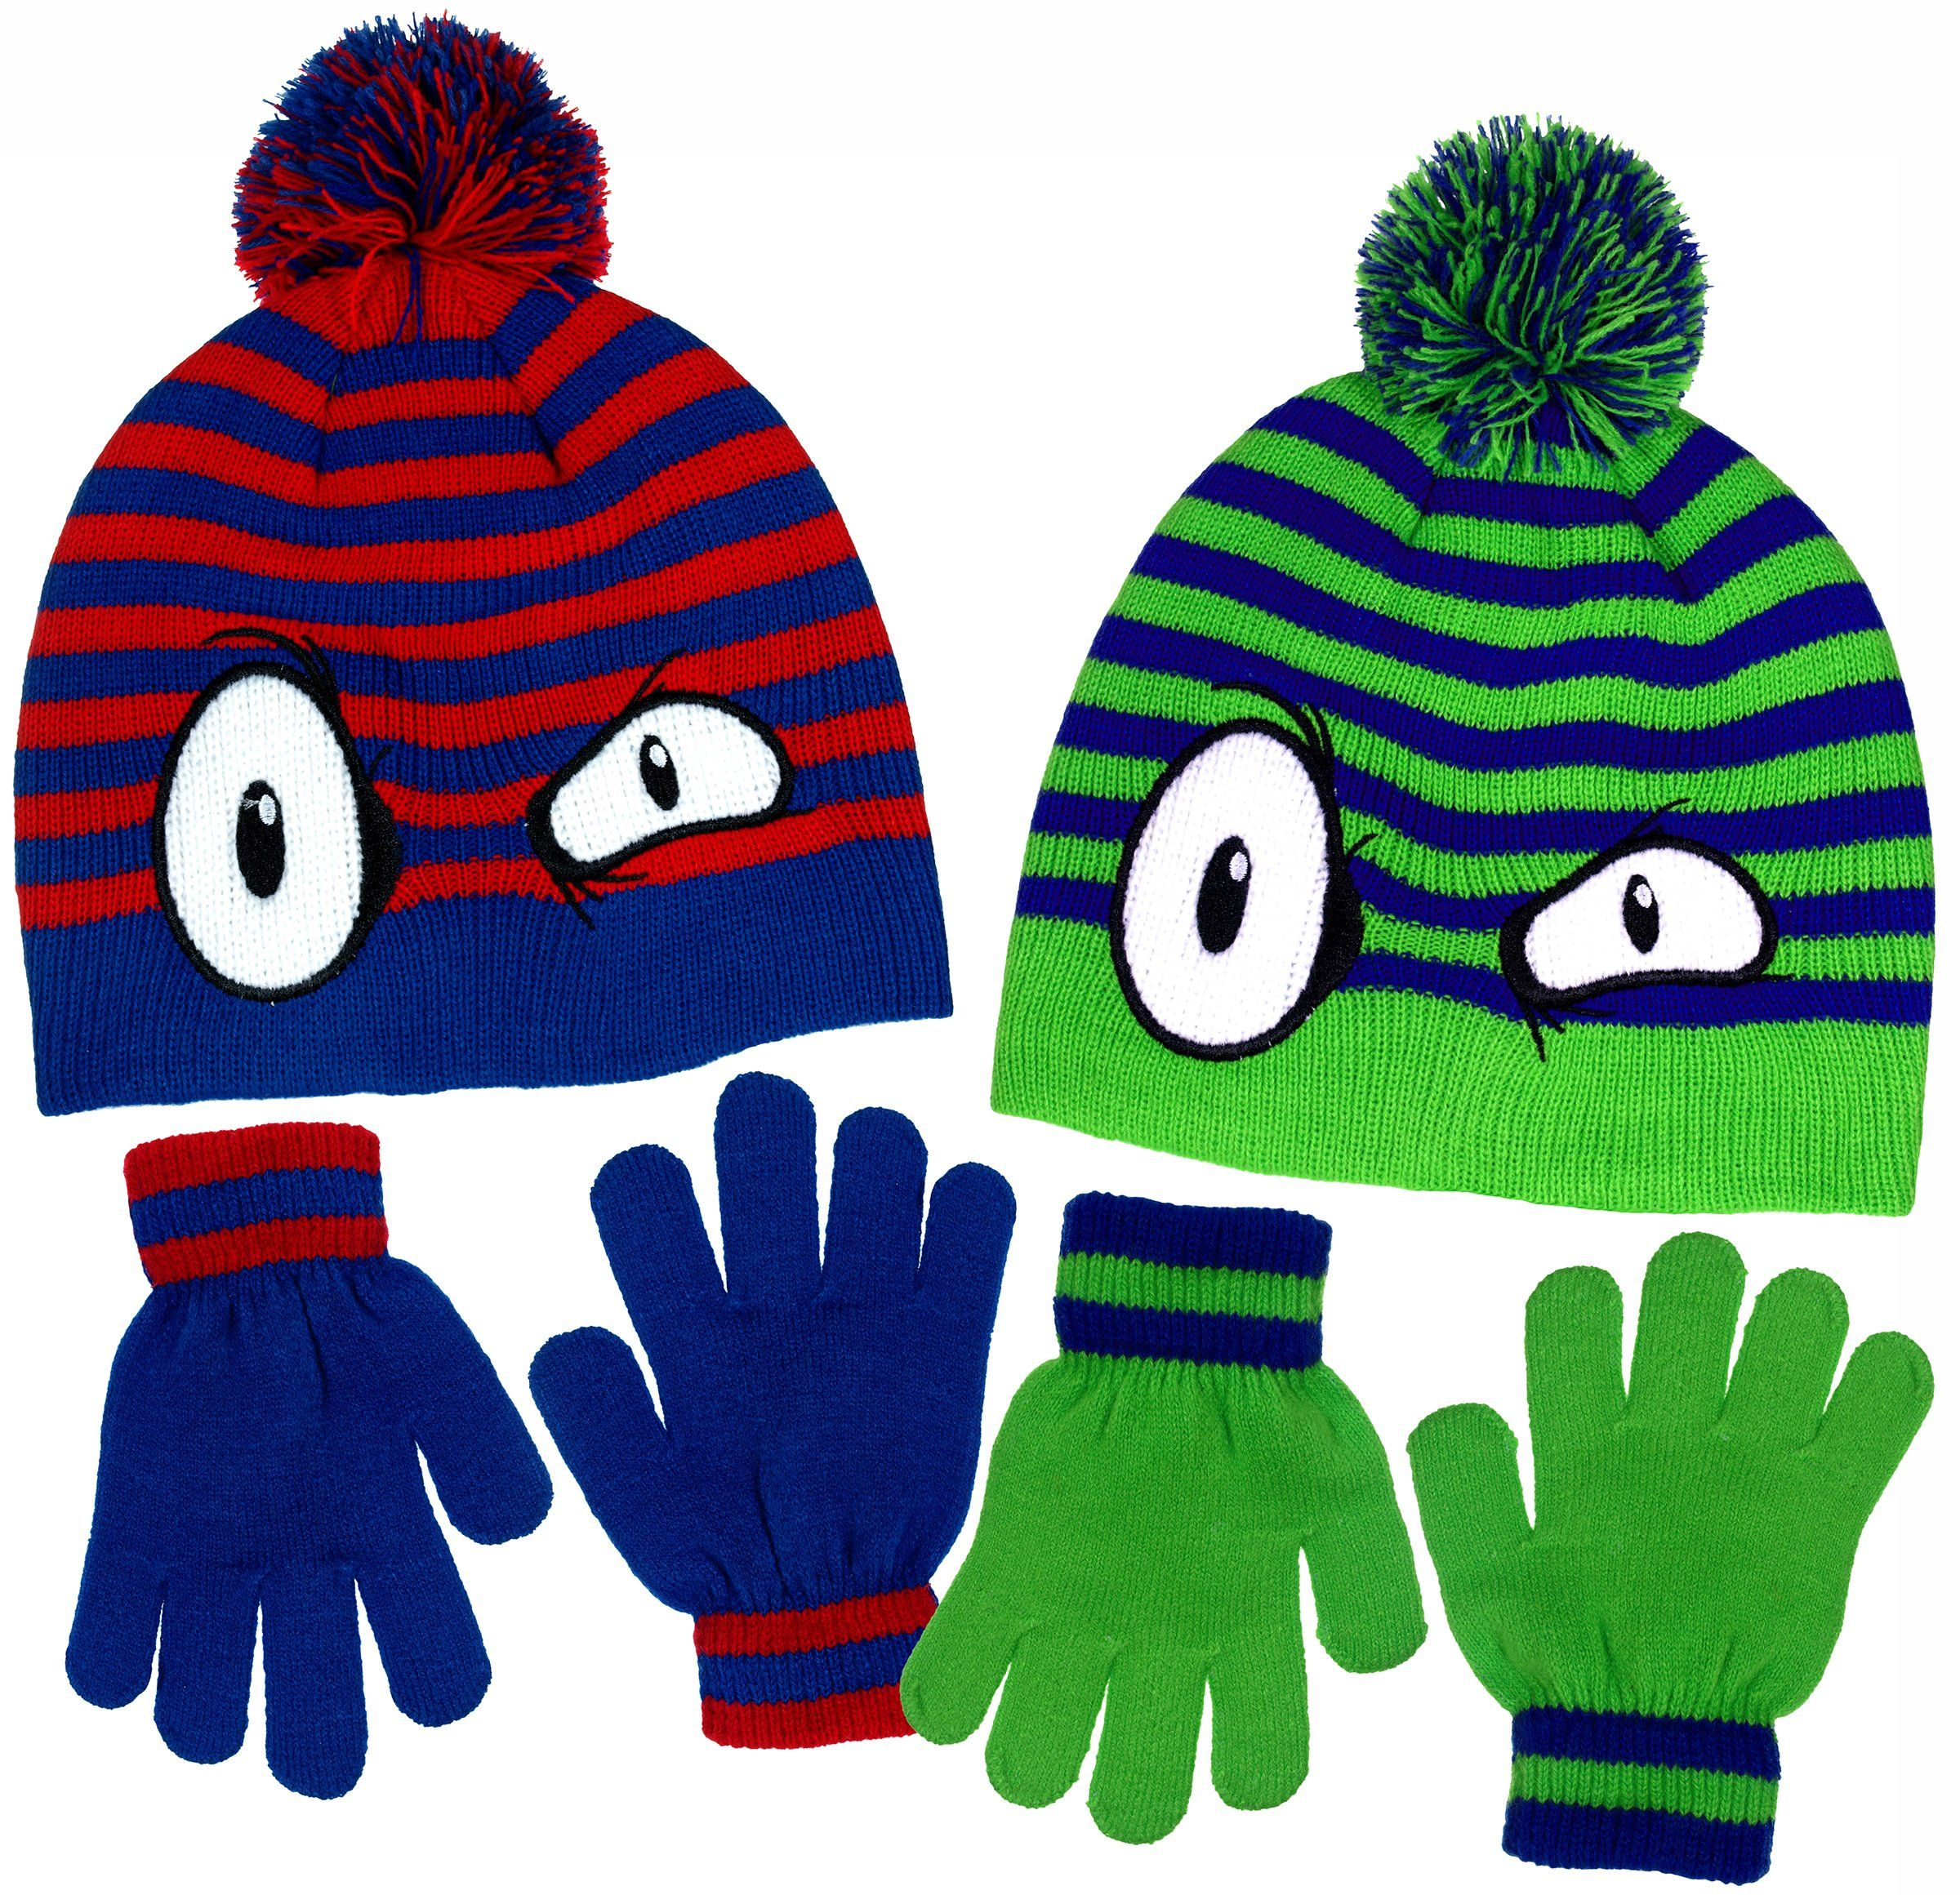 af45f1a5a37 Boy s Monster Eyes Knit Beanie   Gloves Set in Red   Blue and Green   Blue